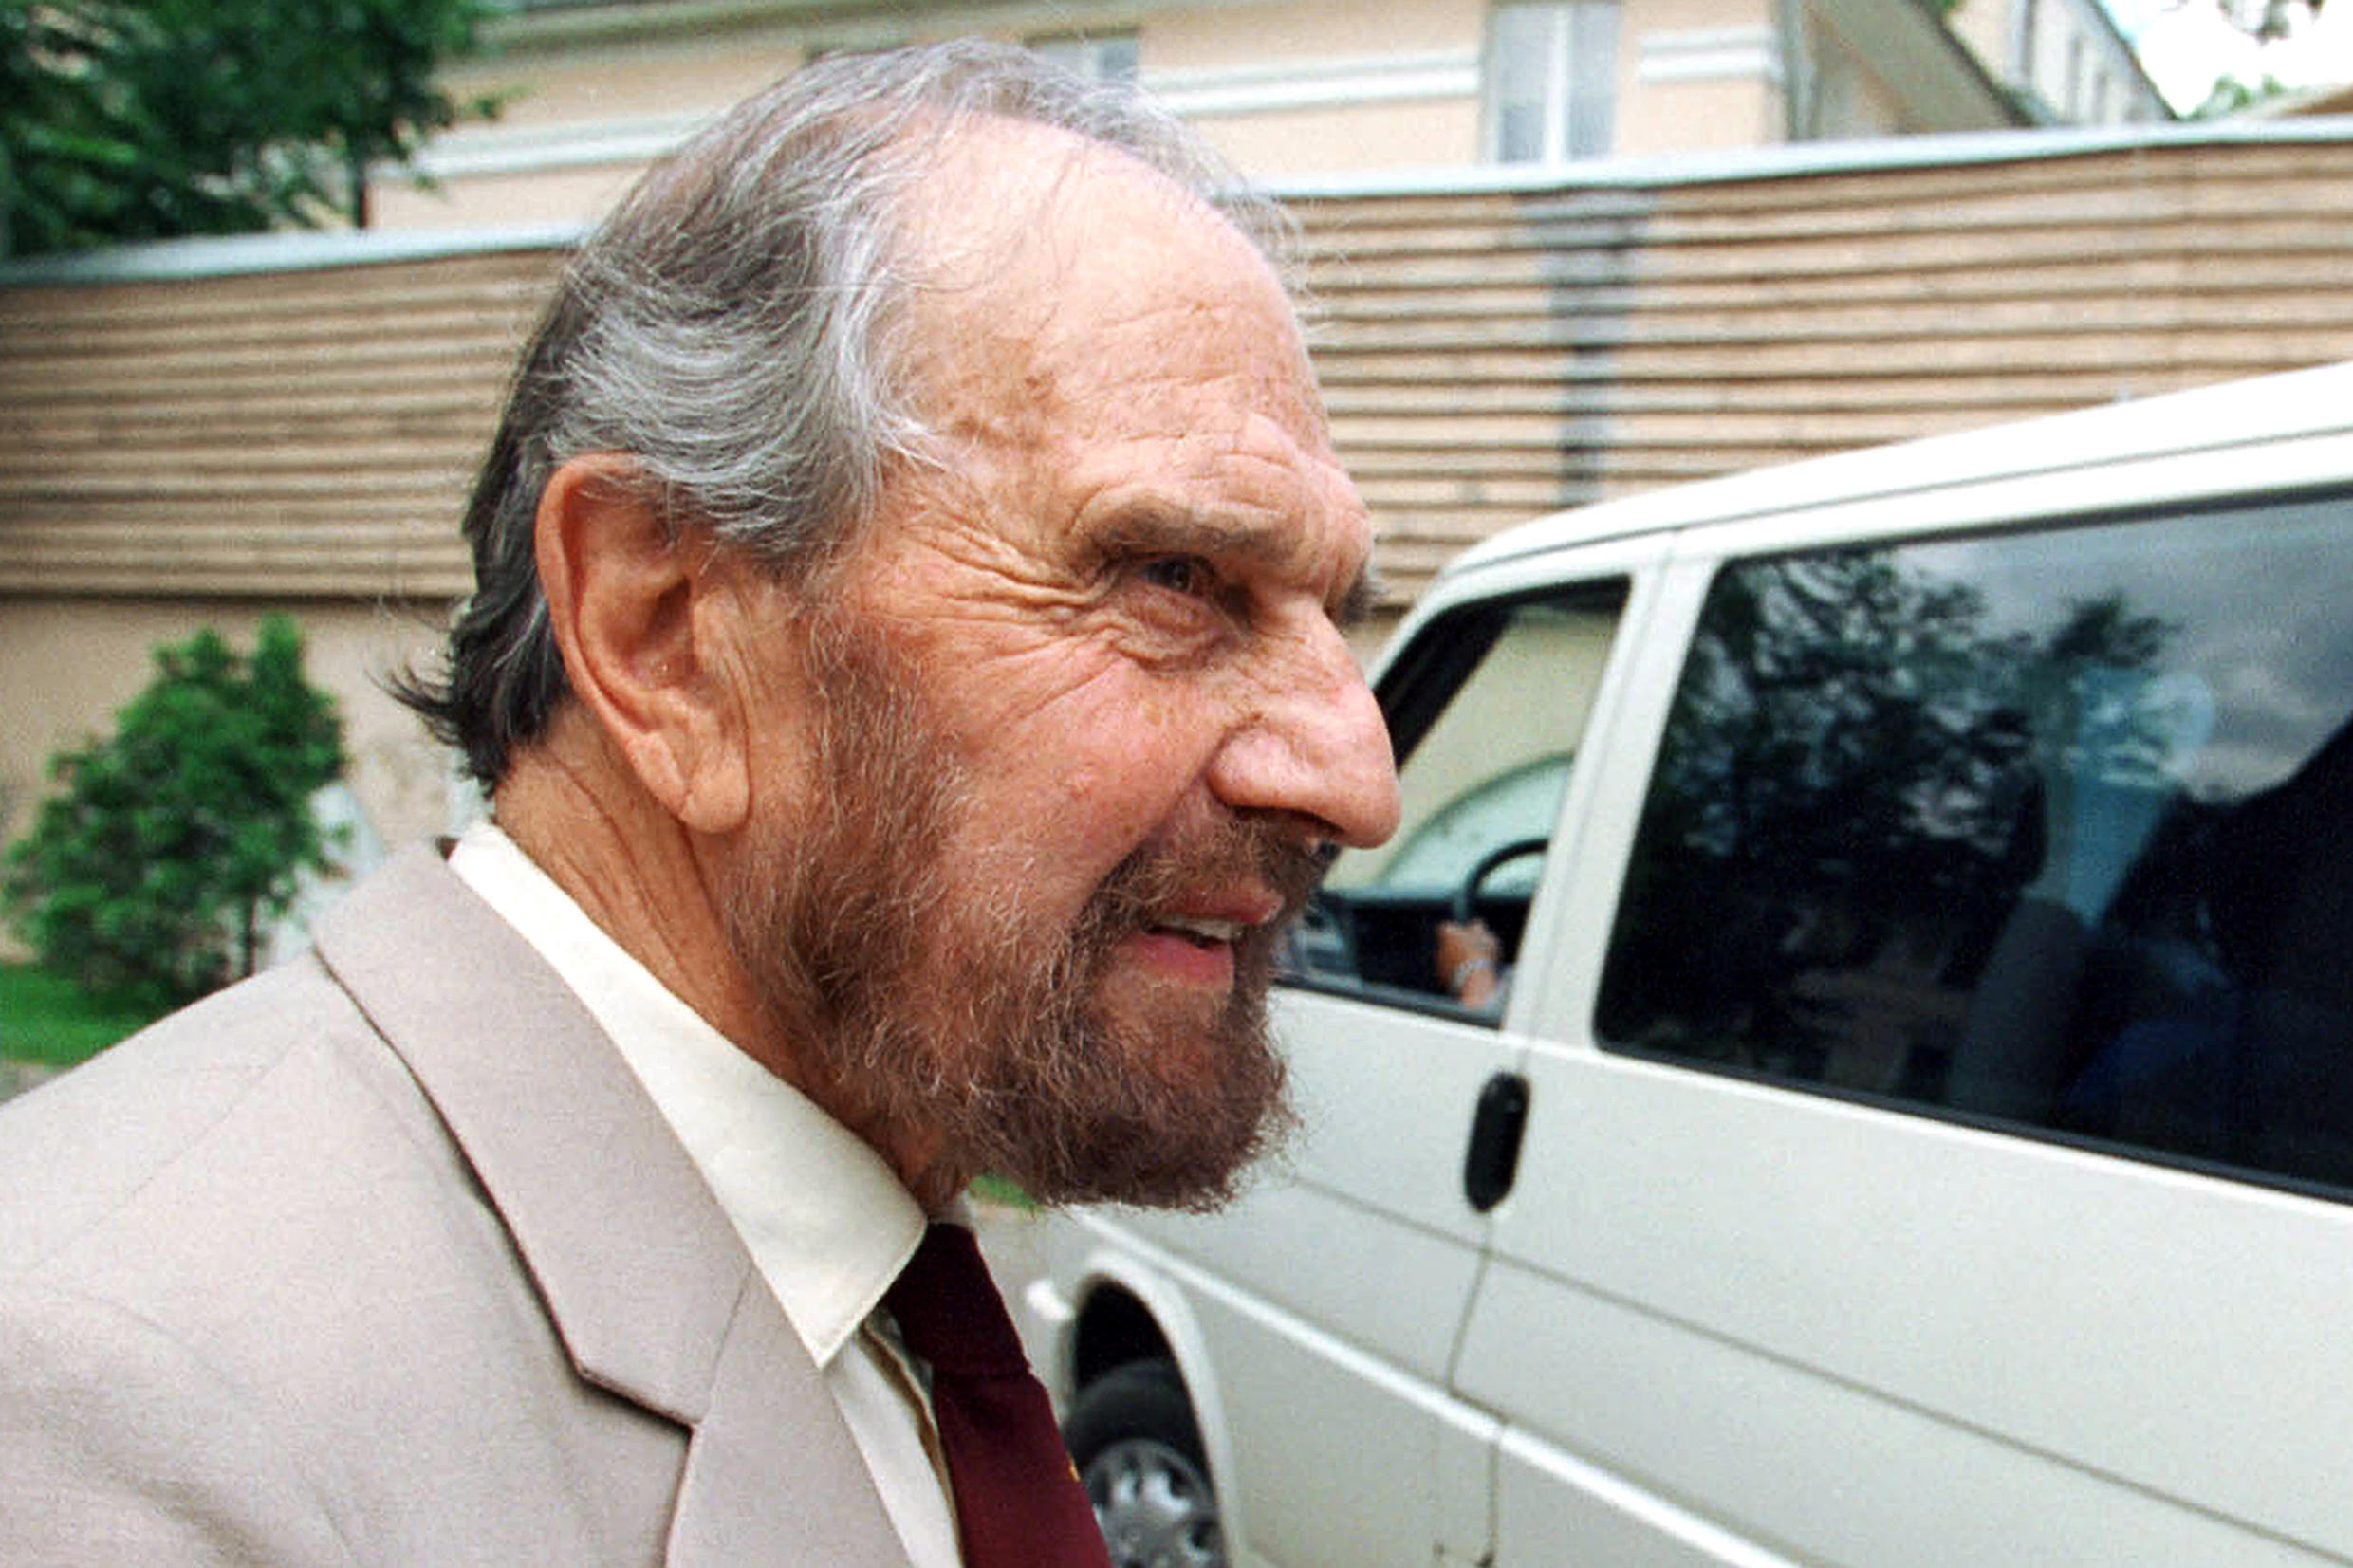 George Blake had lived in the Soviet Union, later Russia, since 1966